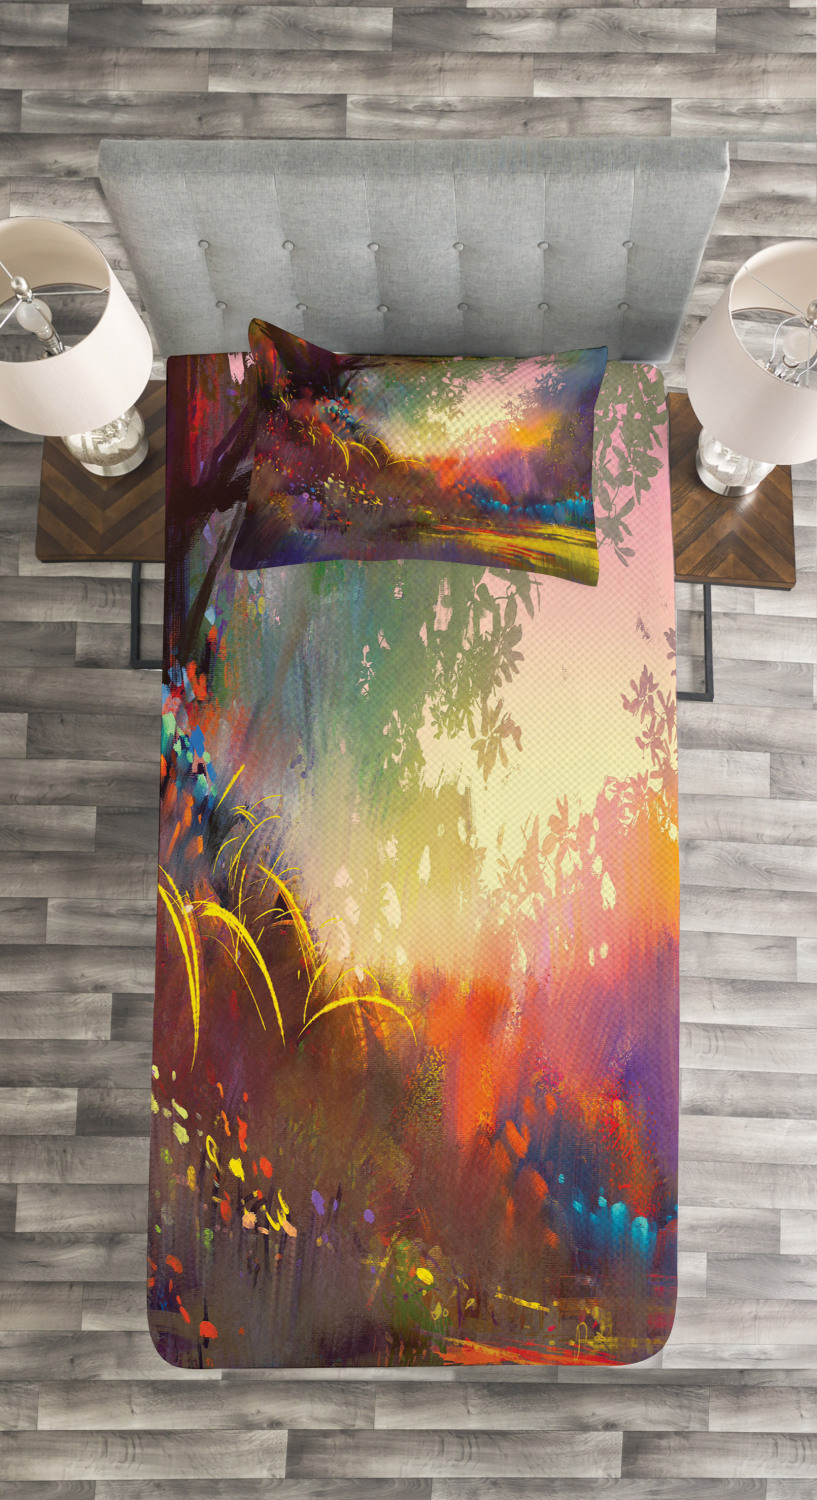 Fantasy Bedspread Set Magical Lake With Brush Effects Surreal Nature Elf Tranquil And Serene Art Print Decorative Quilted Coverlet Set With Pillow Shams Included Multicolor By Ambesonne Walmart Com Walmart Com